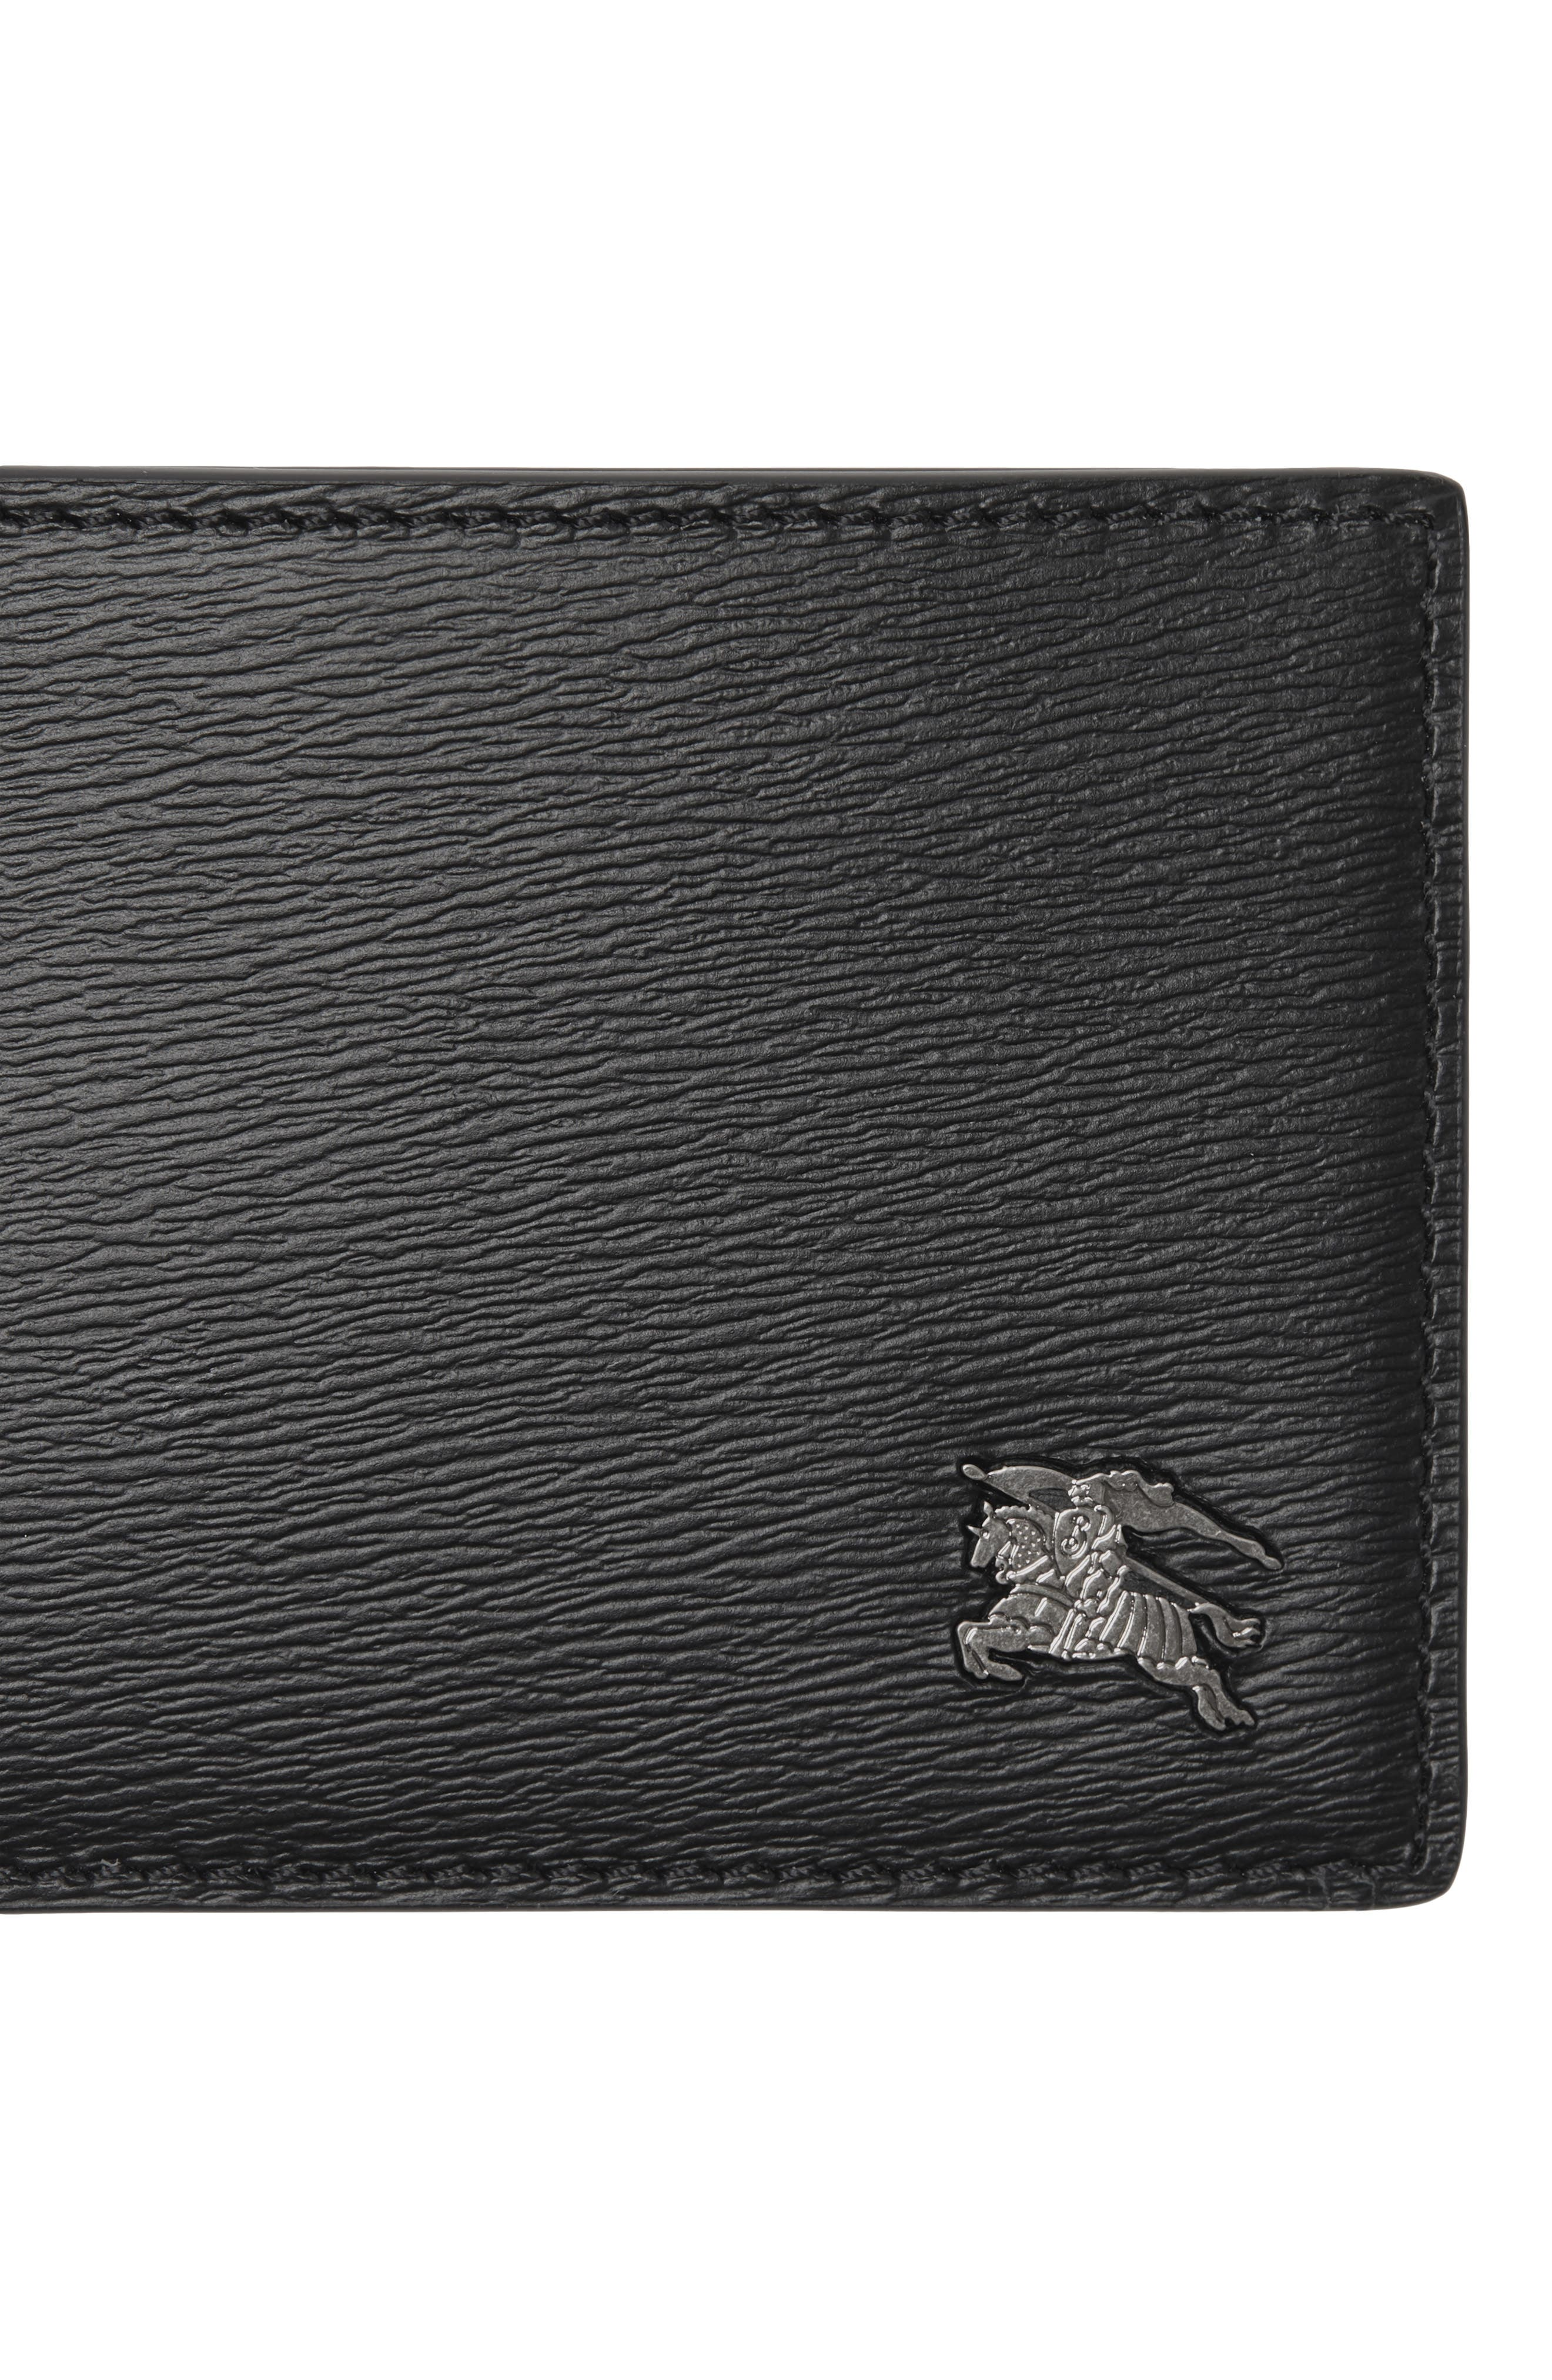 Leather Bifold Wallet,                             Alternate thumbnail 4, color,                             BLACK